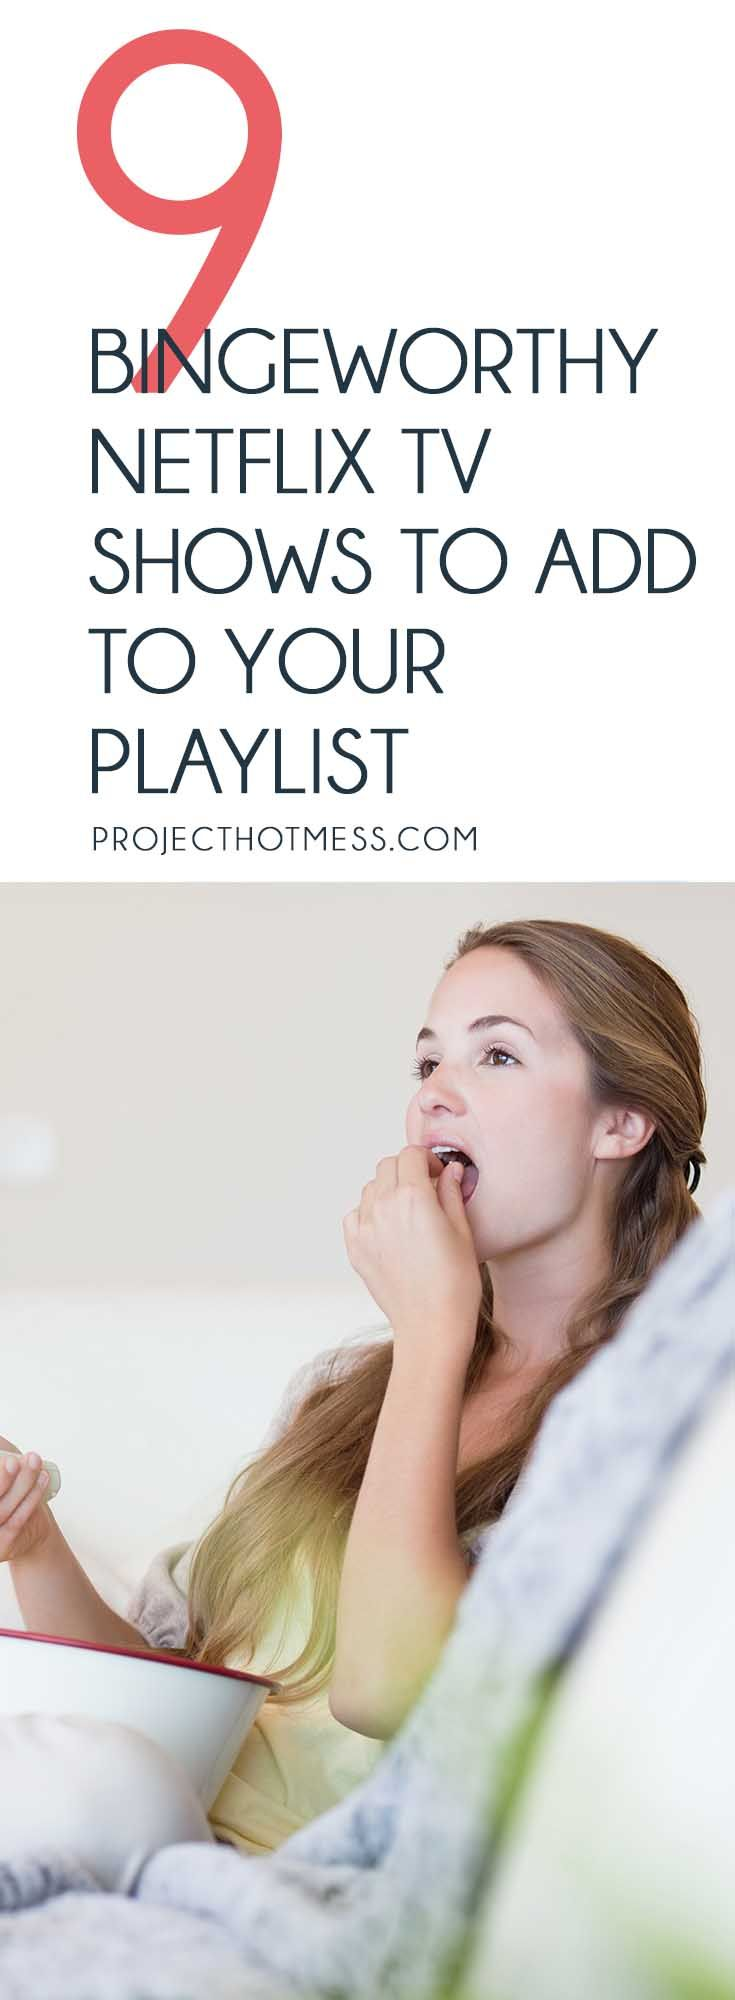 Everyone loves a good binge session, and while movies are awesome, there's nothing quite like the bingeworthy Netflix TV shows to really gorge yourself on. Here's a list of ones you need to add to your playlist. TV Shows | Netflix | Relax | Self Care | Movie Night | Date Night | Day at home | TV playlist via @project_hotmess